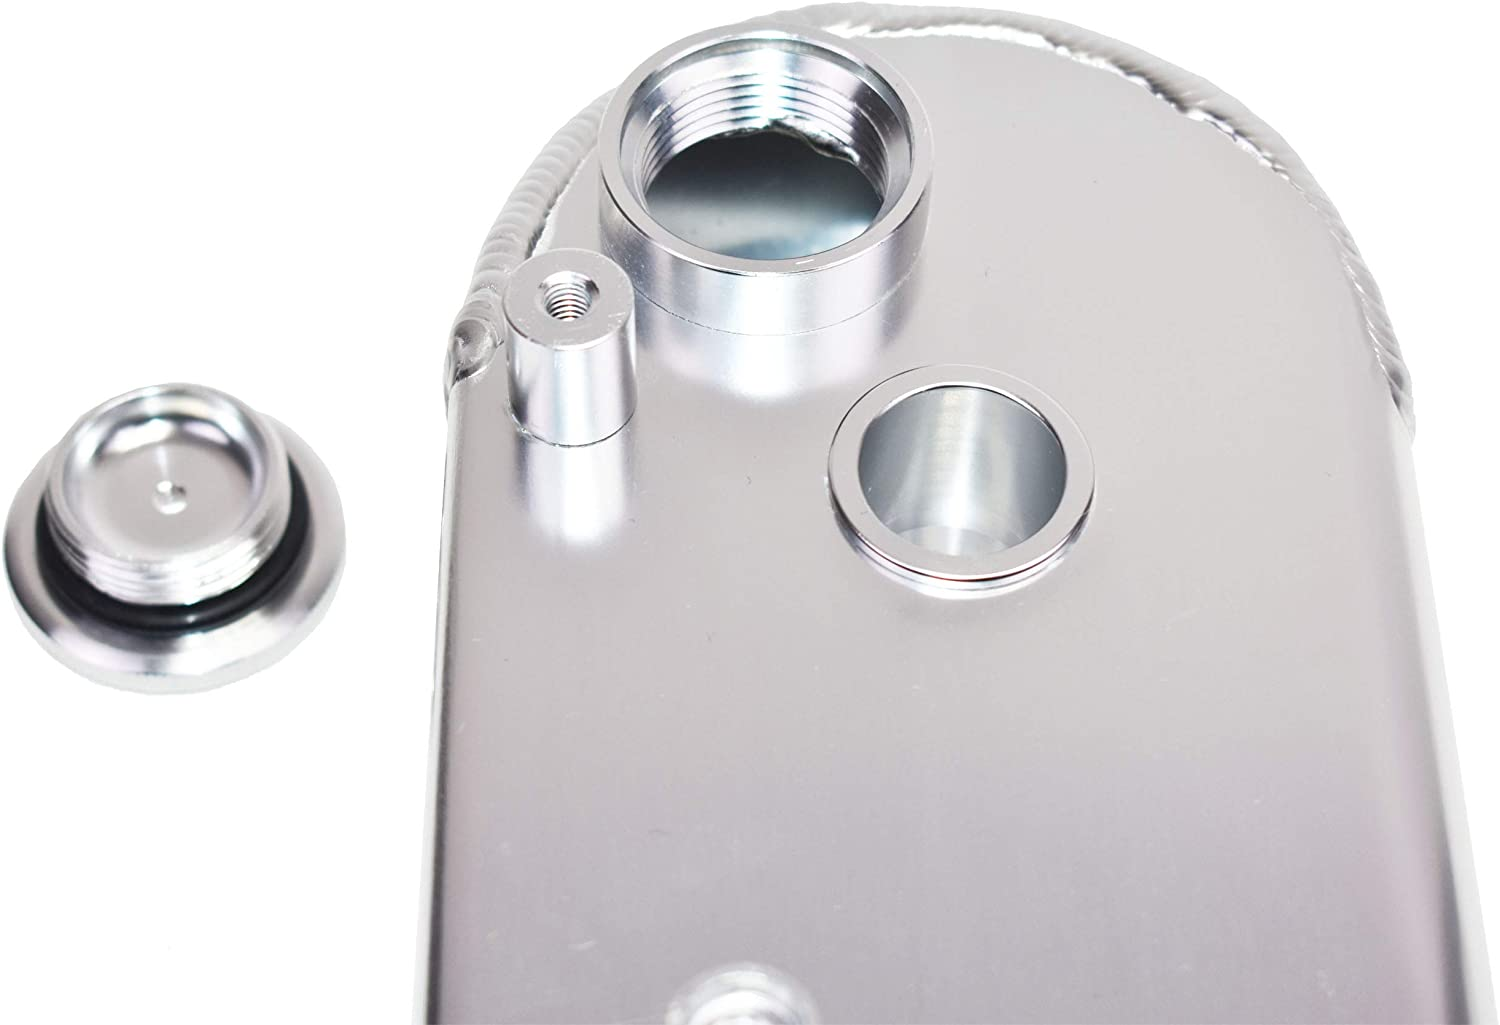 A-Team Performance Fabricated Aluminum Valve Covers with Gasket Coil Mounts Compatible with GM LSX Black